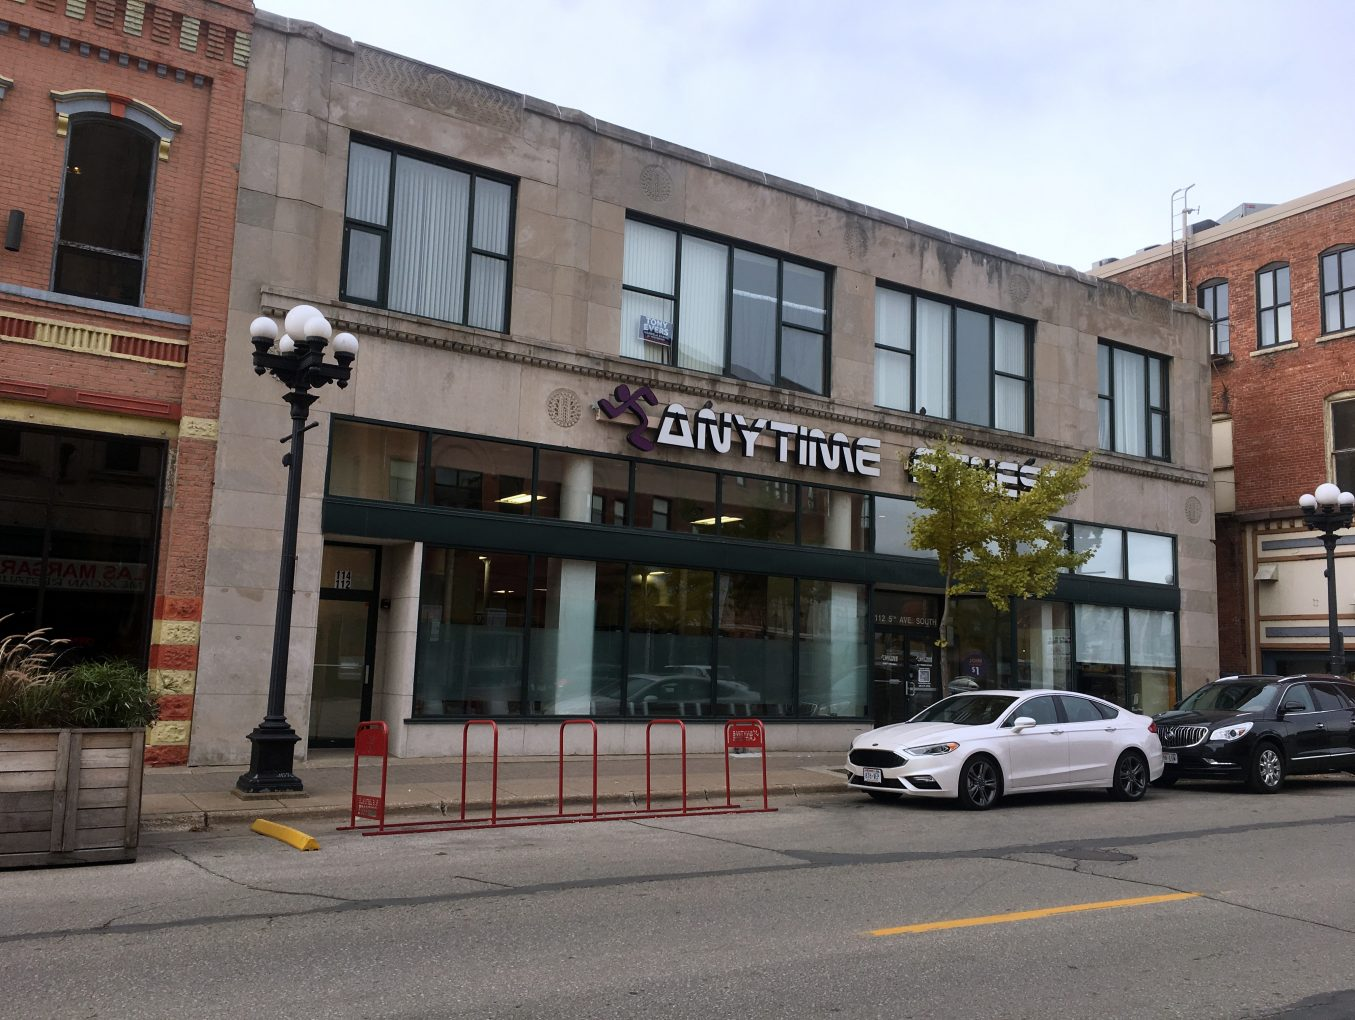 Commercial/Residential Income Property in Historic Downtown La Crosse, WI